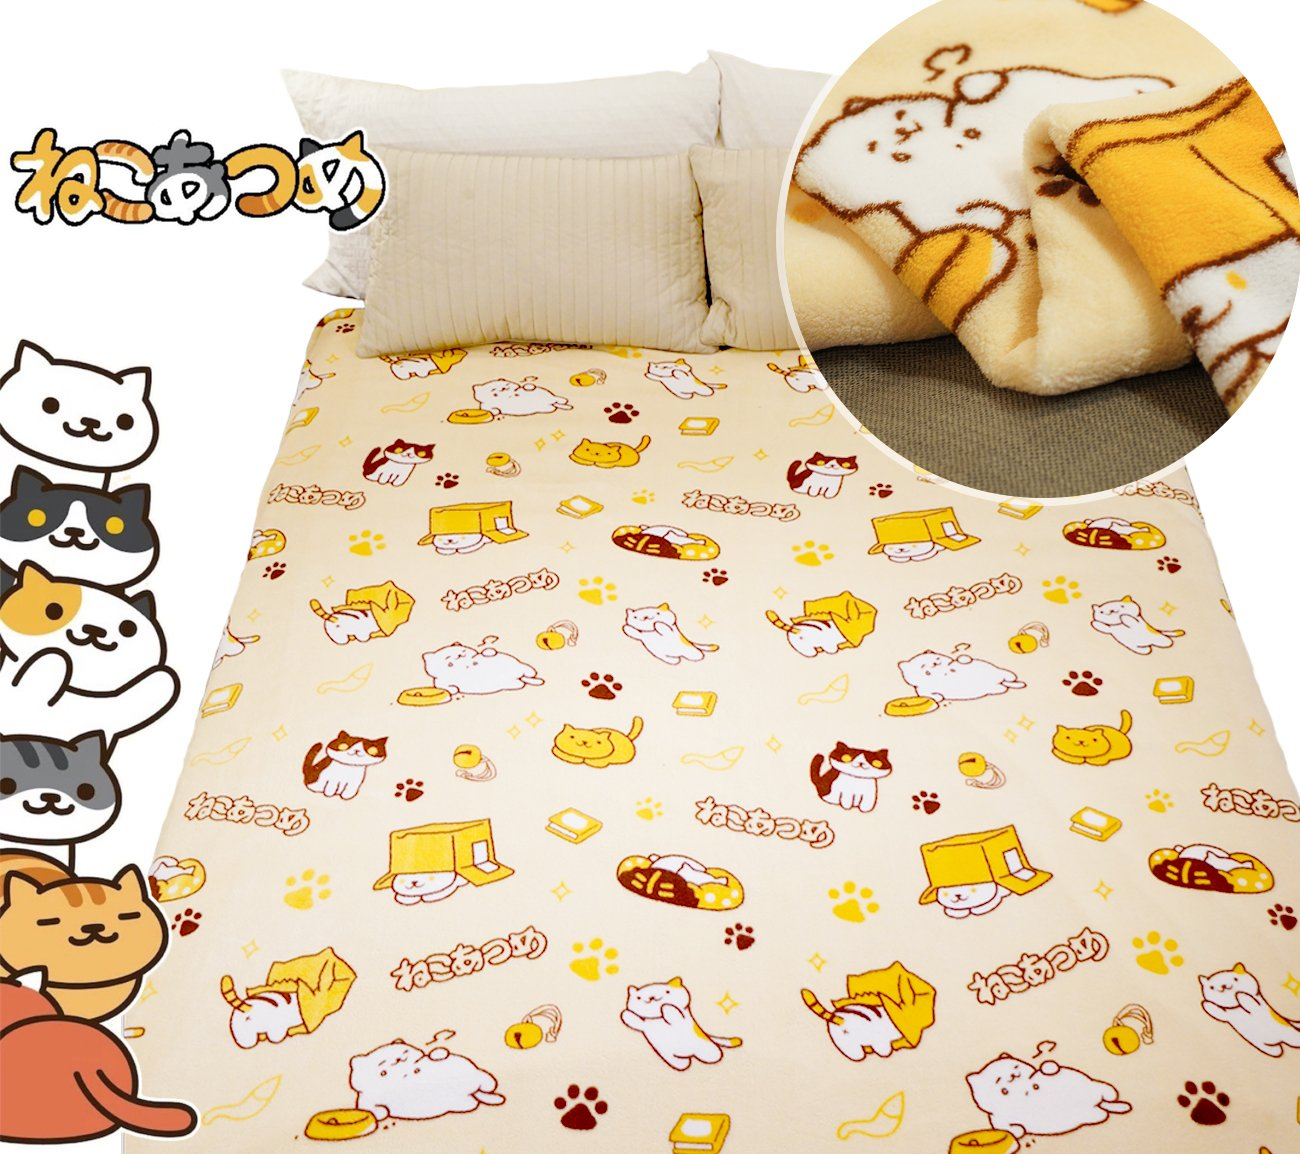 Sunny Bear Neko Atsume Cat Print Soft Throw Blanket for Kids Adults Couch Bed,Janpanese Game Cat Pattern Blanket 59